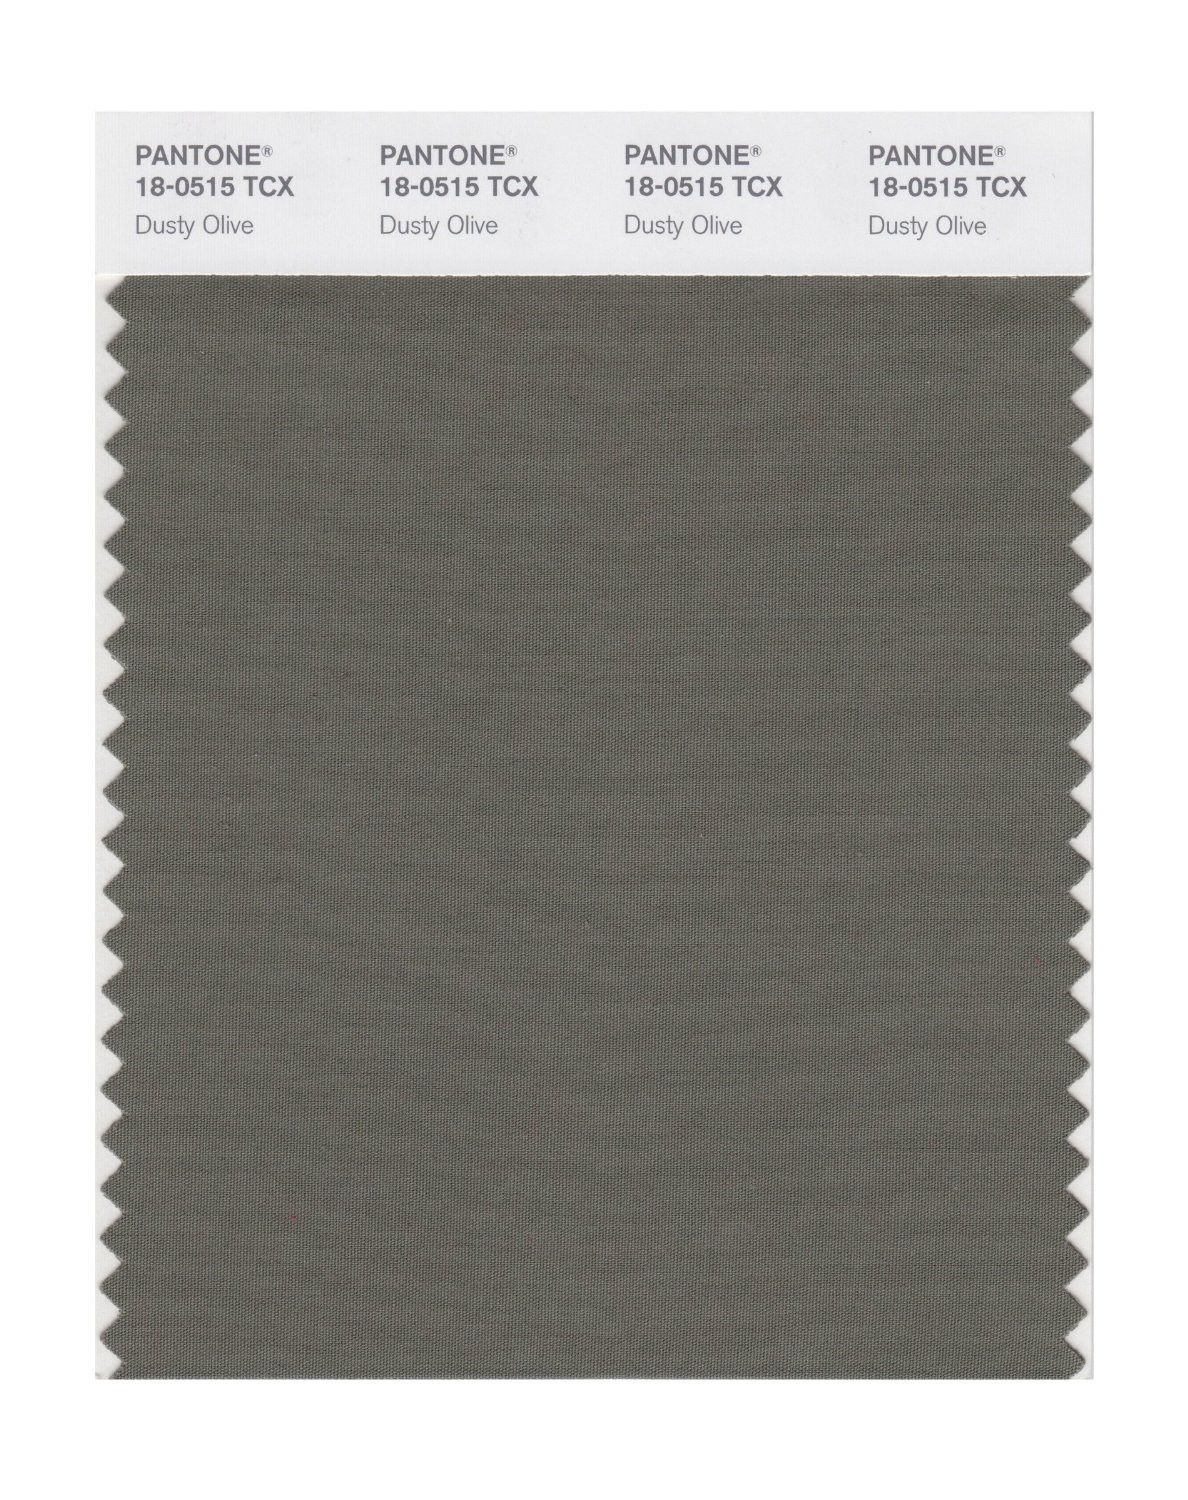 Pantone 18-0515 TCX Swatch Card Dusty Olive